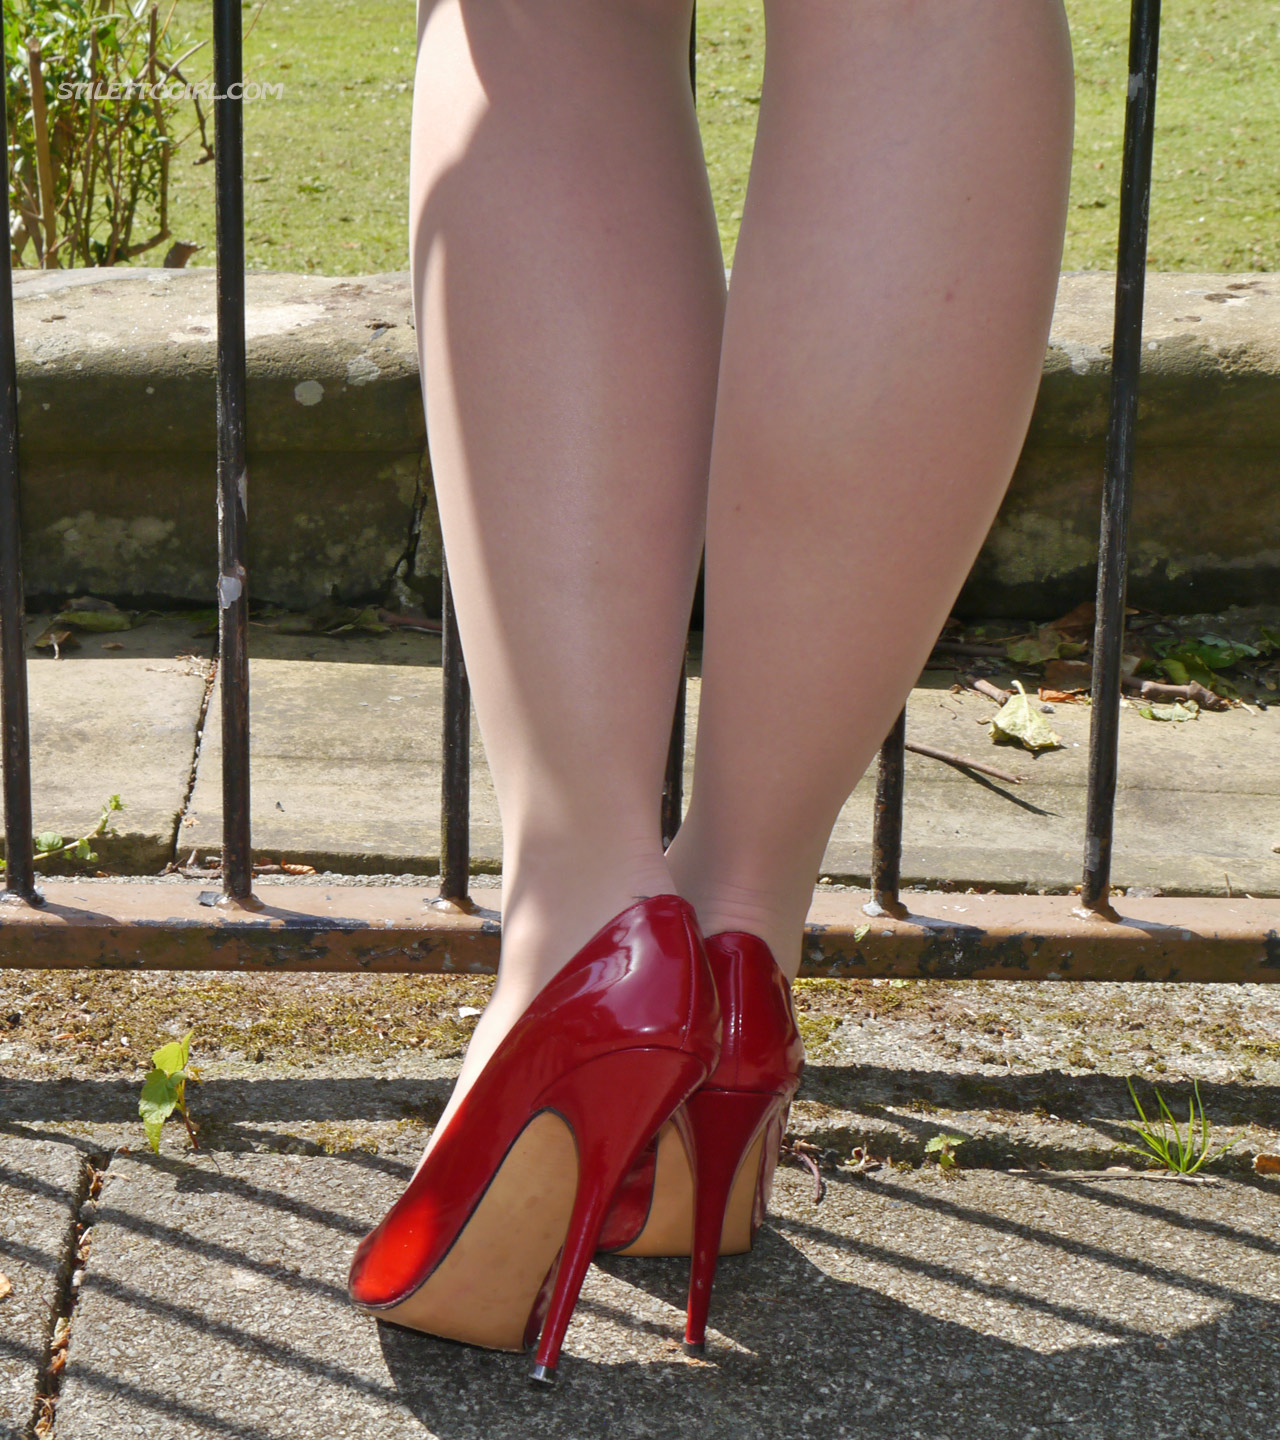 Sheer Nude Pantyhose Feet in Sexy Red High Heels by StilettoGirl Gallery